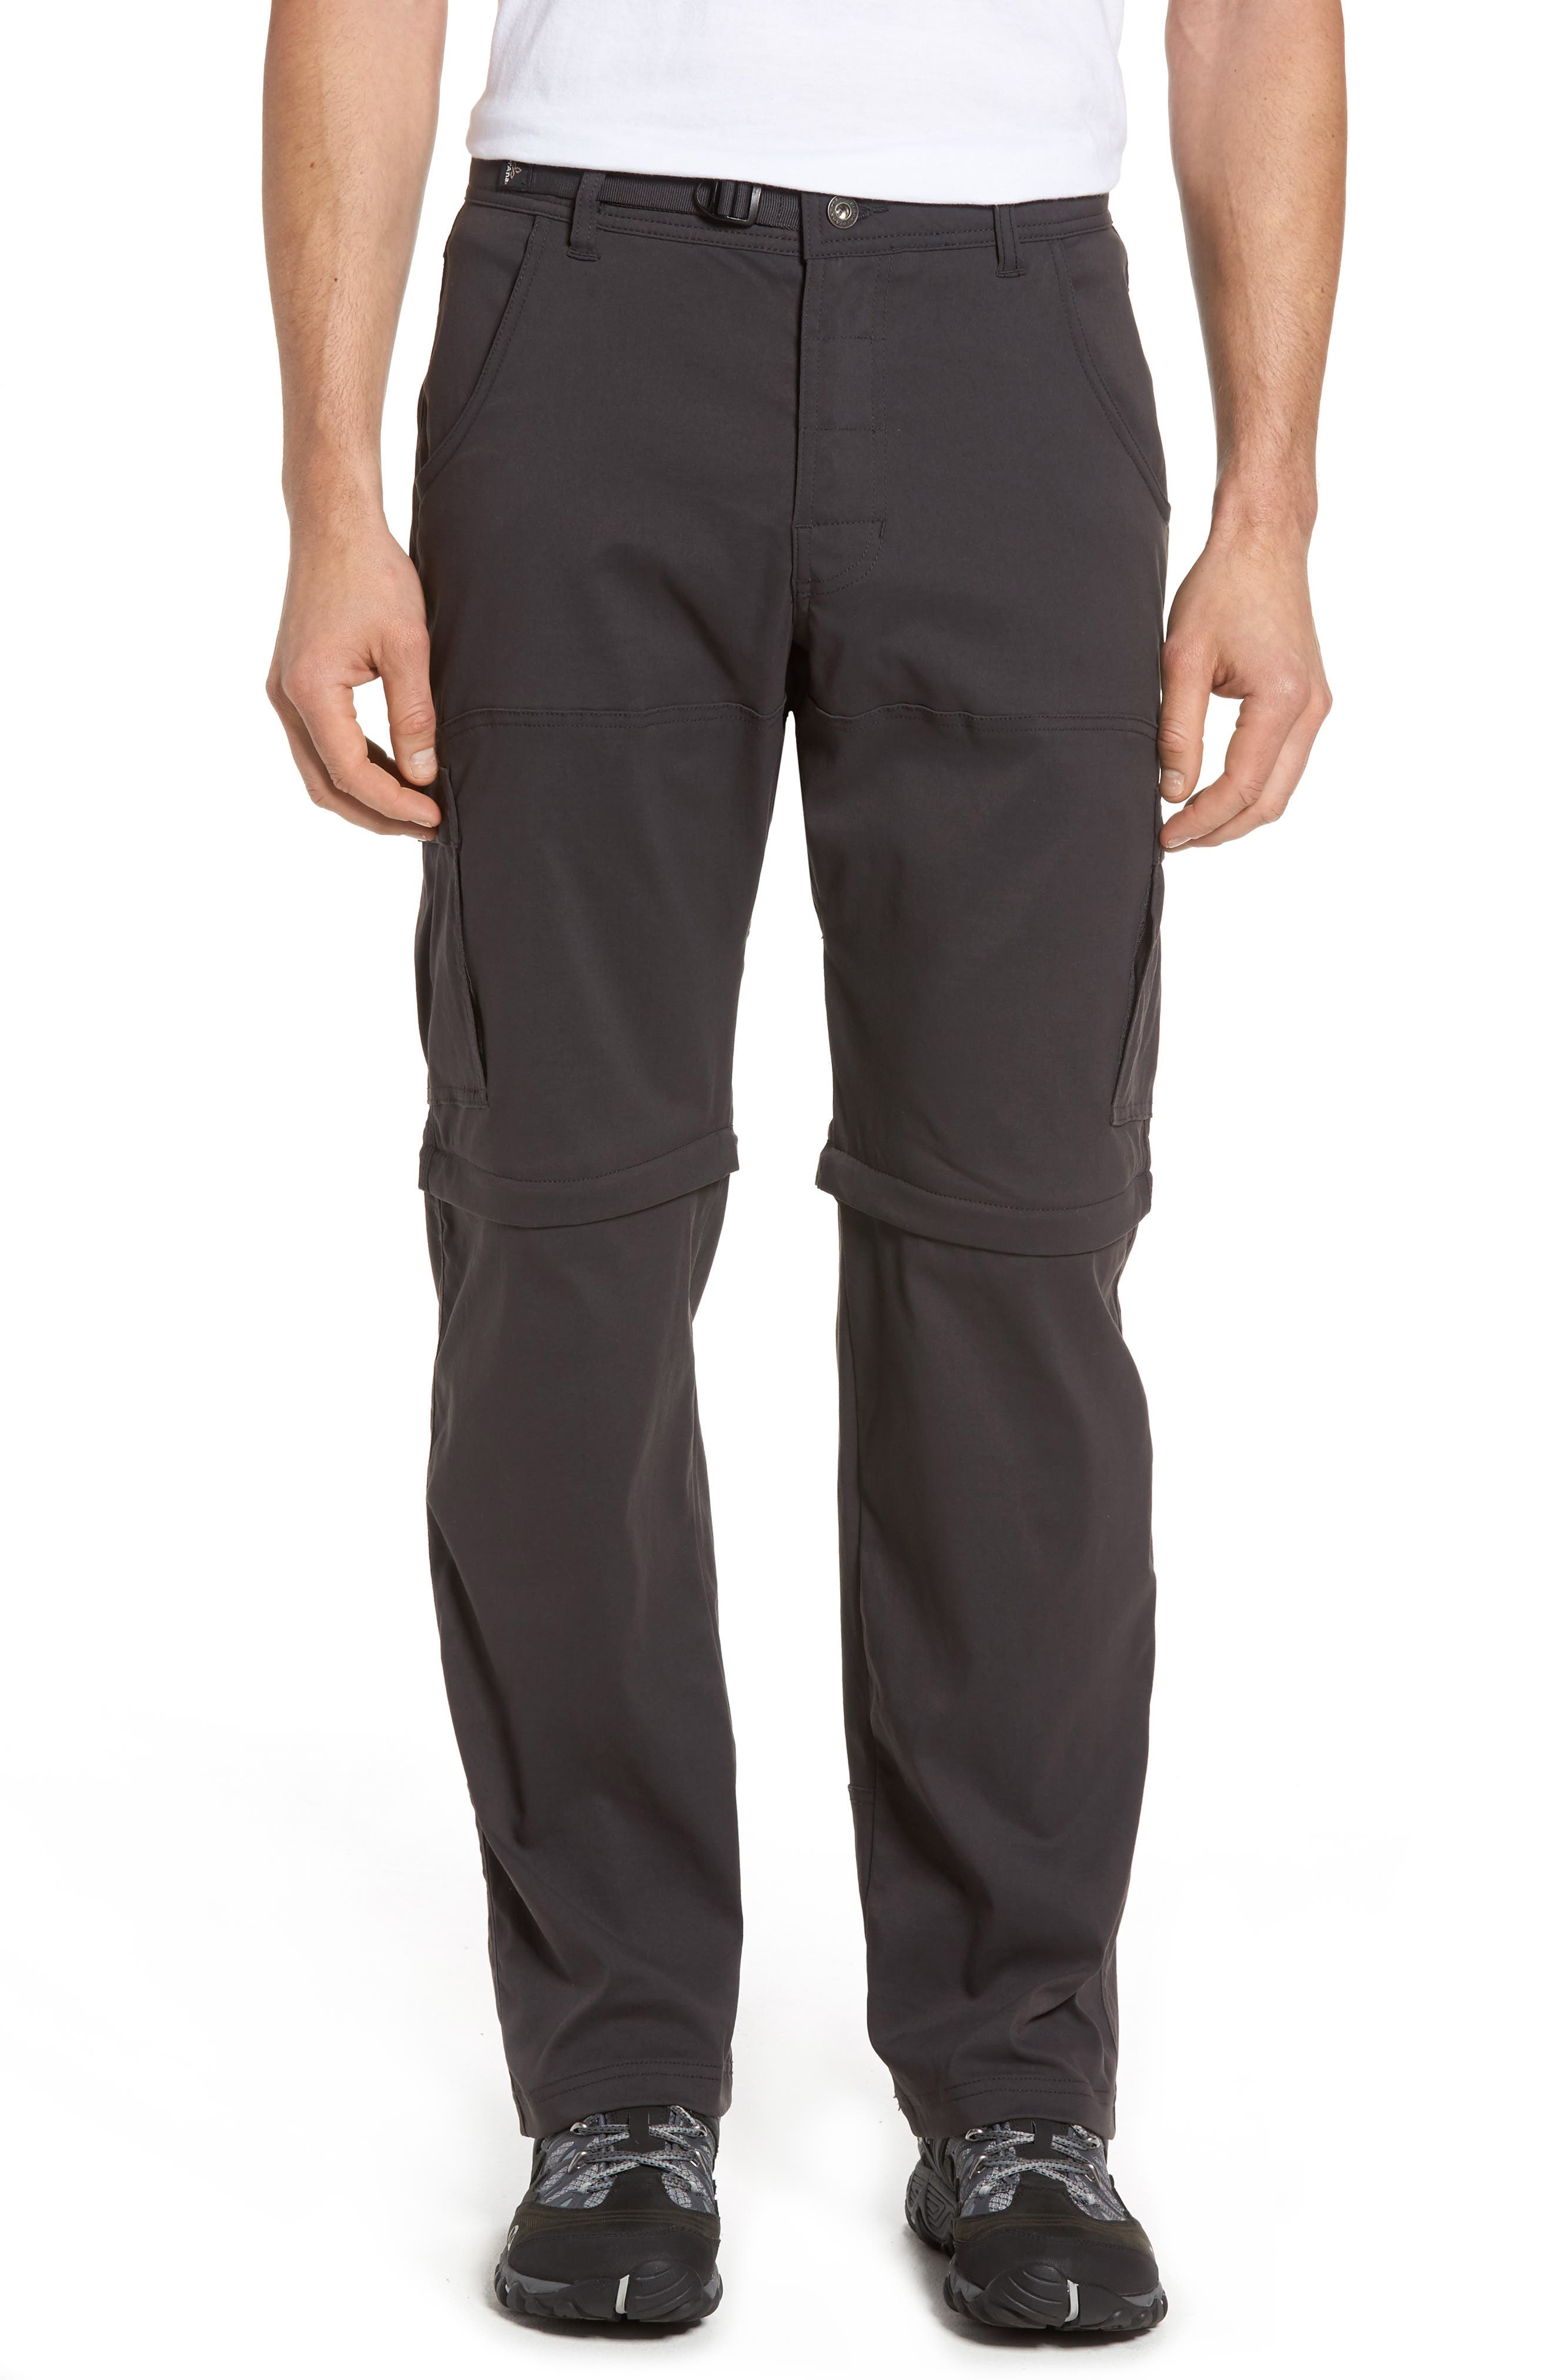 Zion Stretch Convertible Cargo Hiking Pants,                             Main thumbnail 1, color,                             010